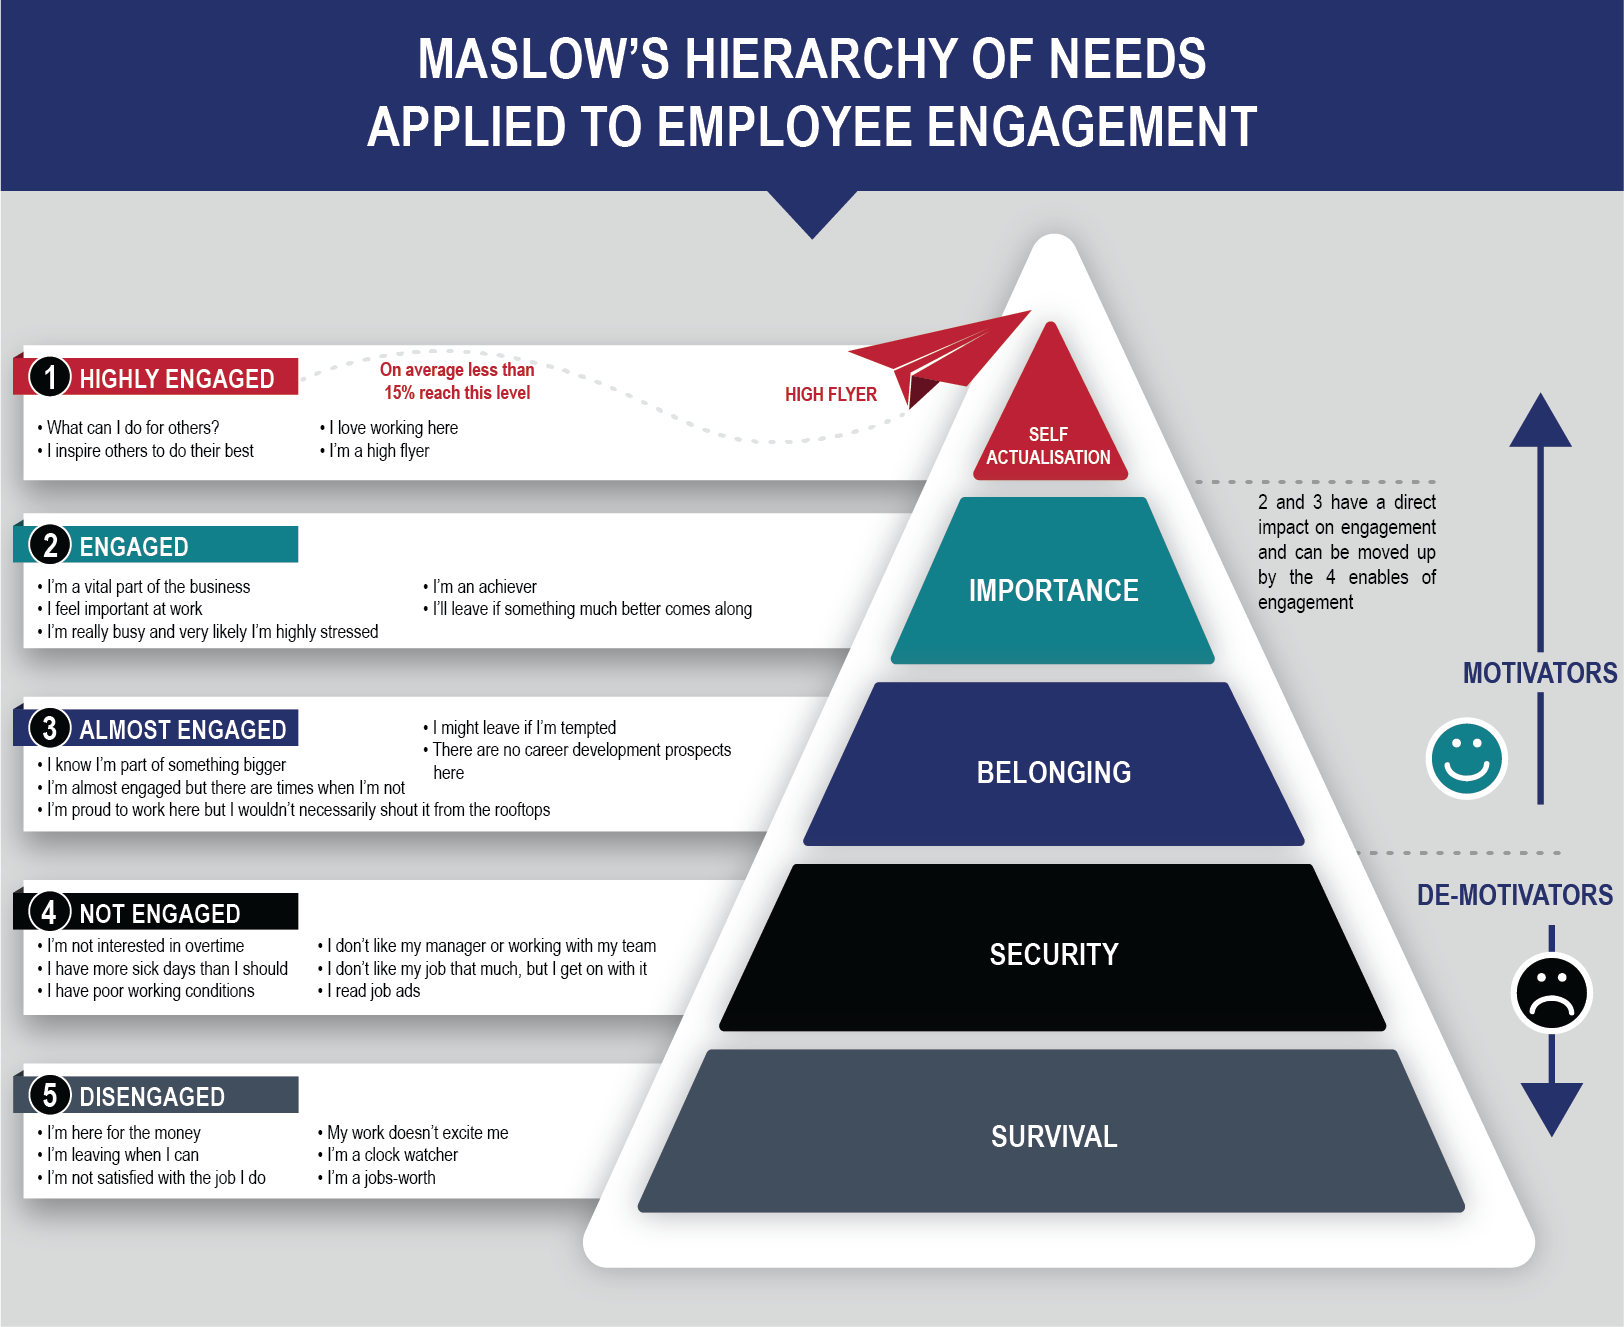 abraham maslow hierarchy of needs summary